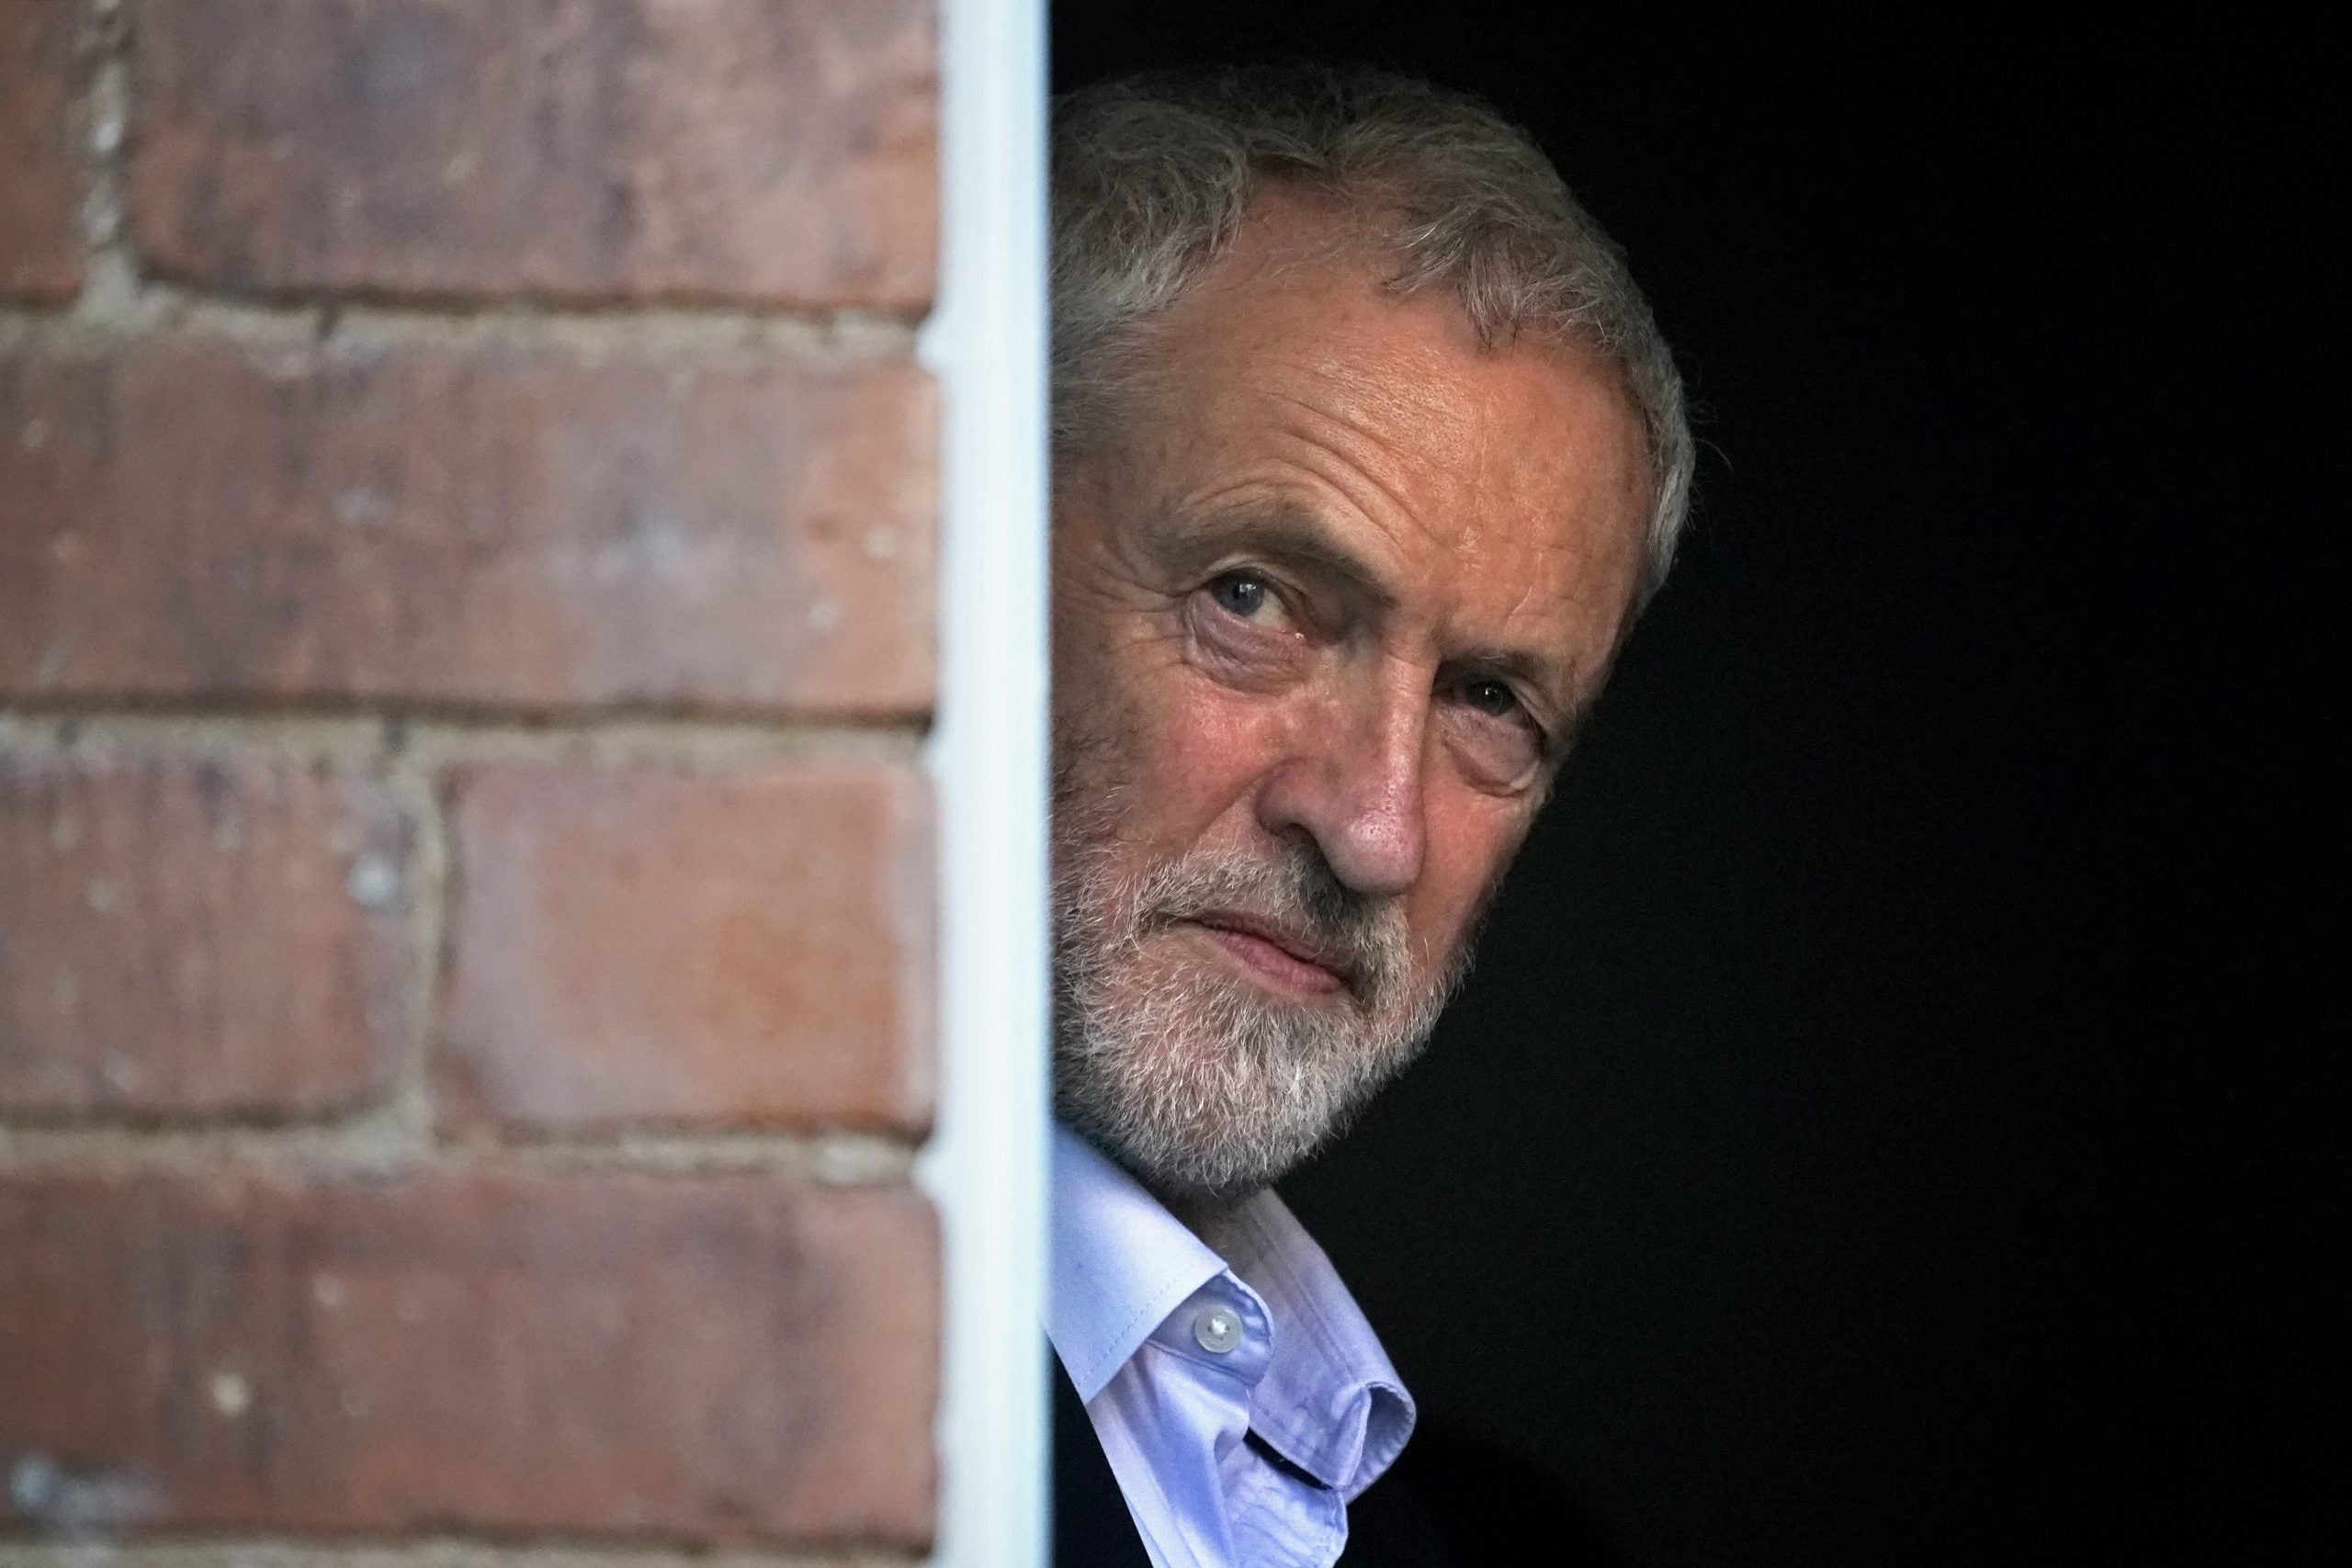 Corbyn has stemmed the flow of defections but it may have cost him the chance to become PM